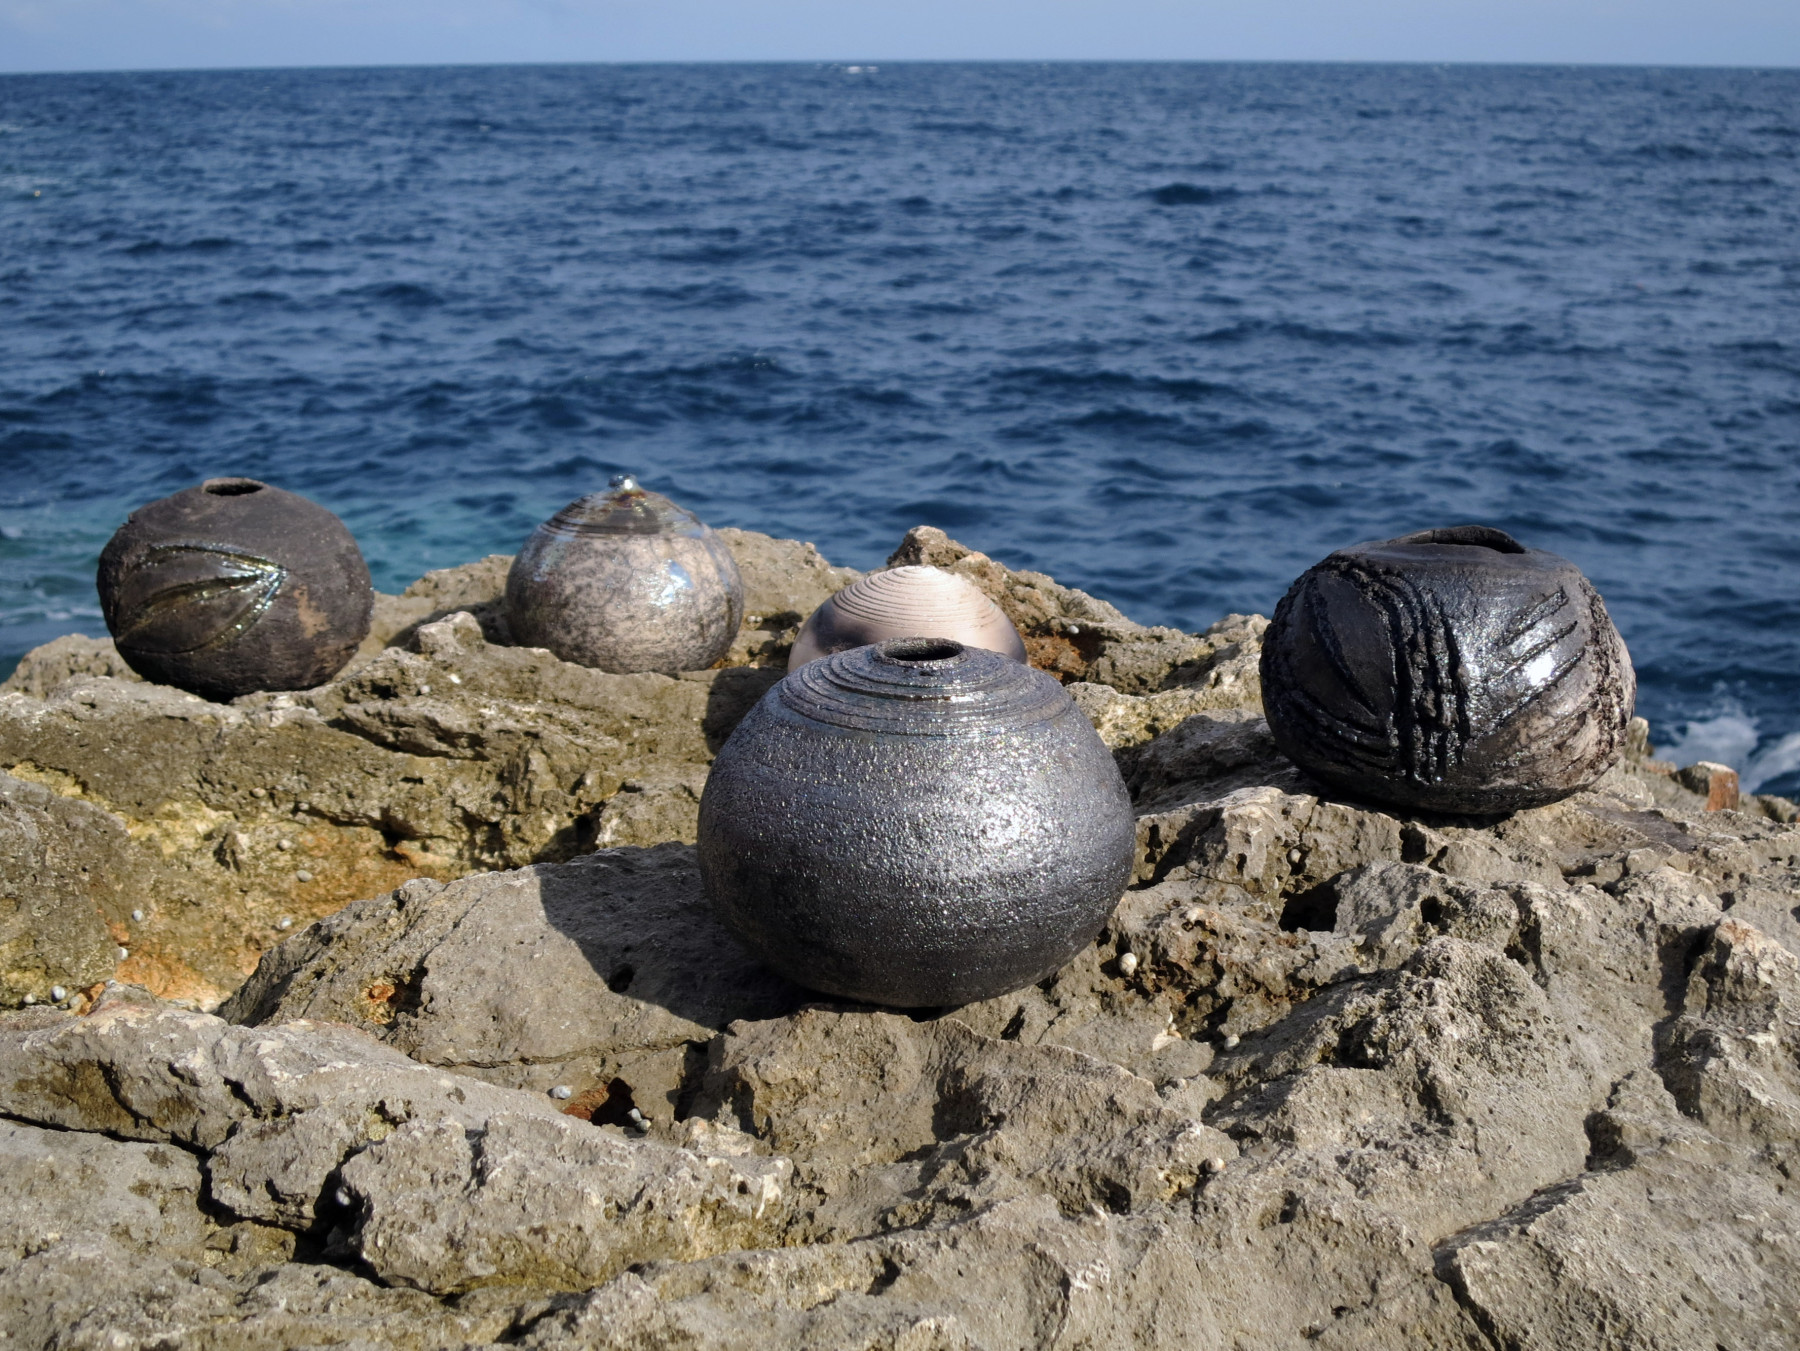 Whispering Globes from the Salento Series